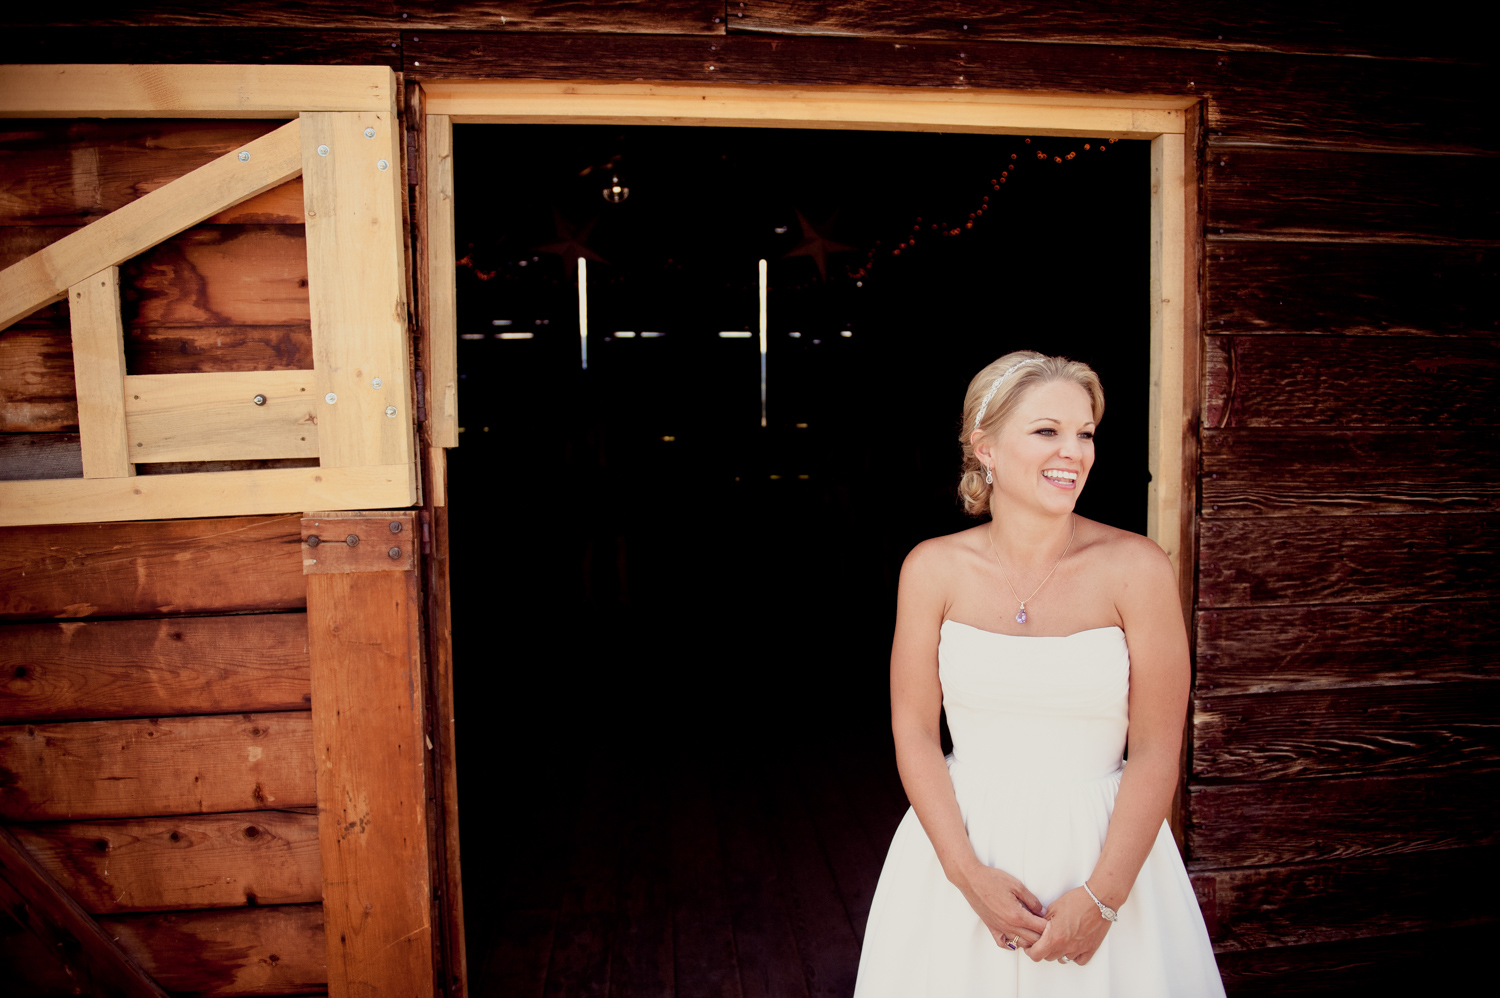 Steamboat_Springs_Wedding_011.JPG